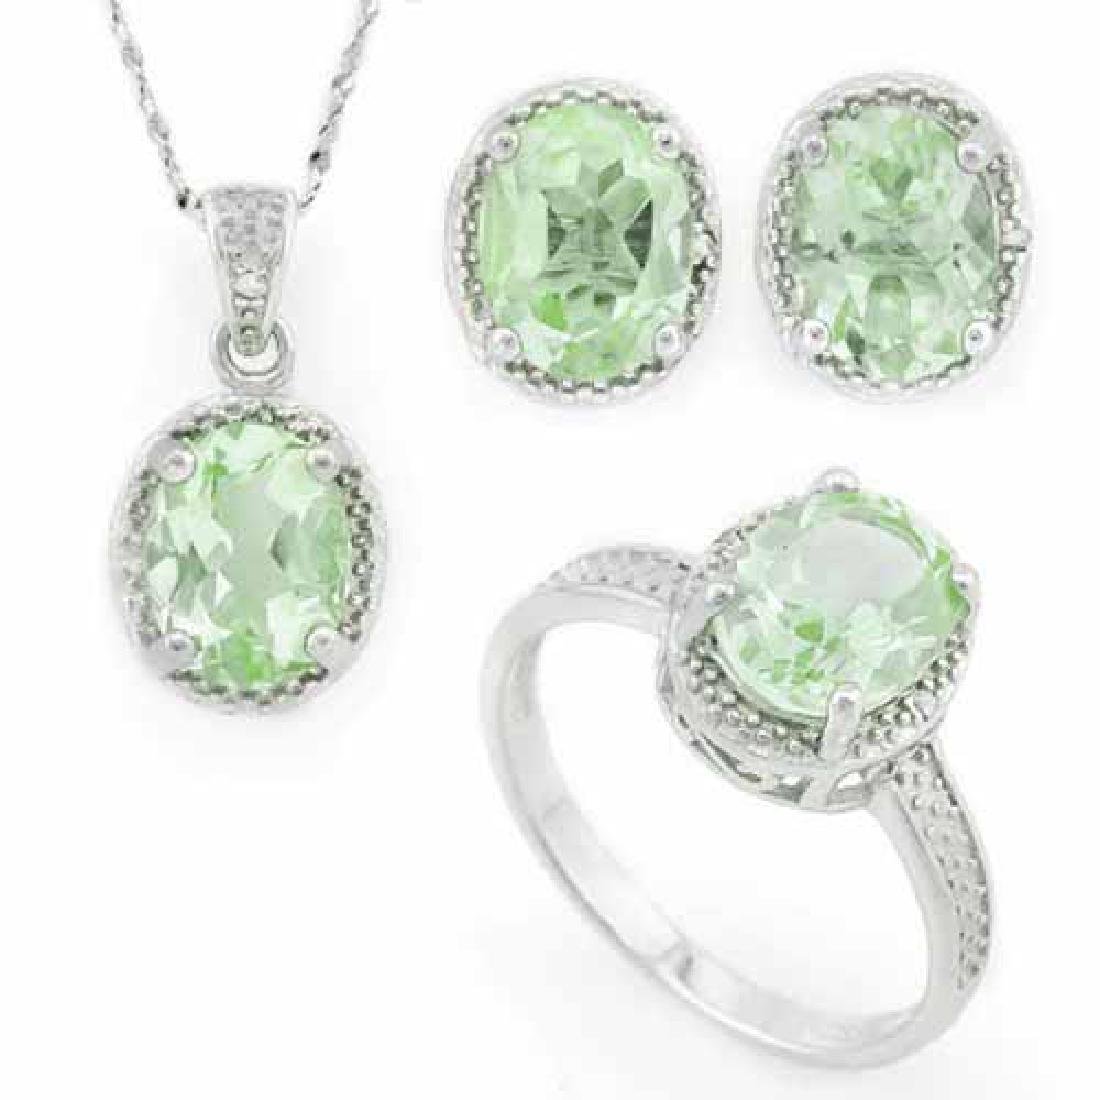 6 2/5 CARAT GREEN AMETHYST & DIAMOND 925 STERLING SILVE